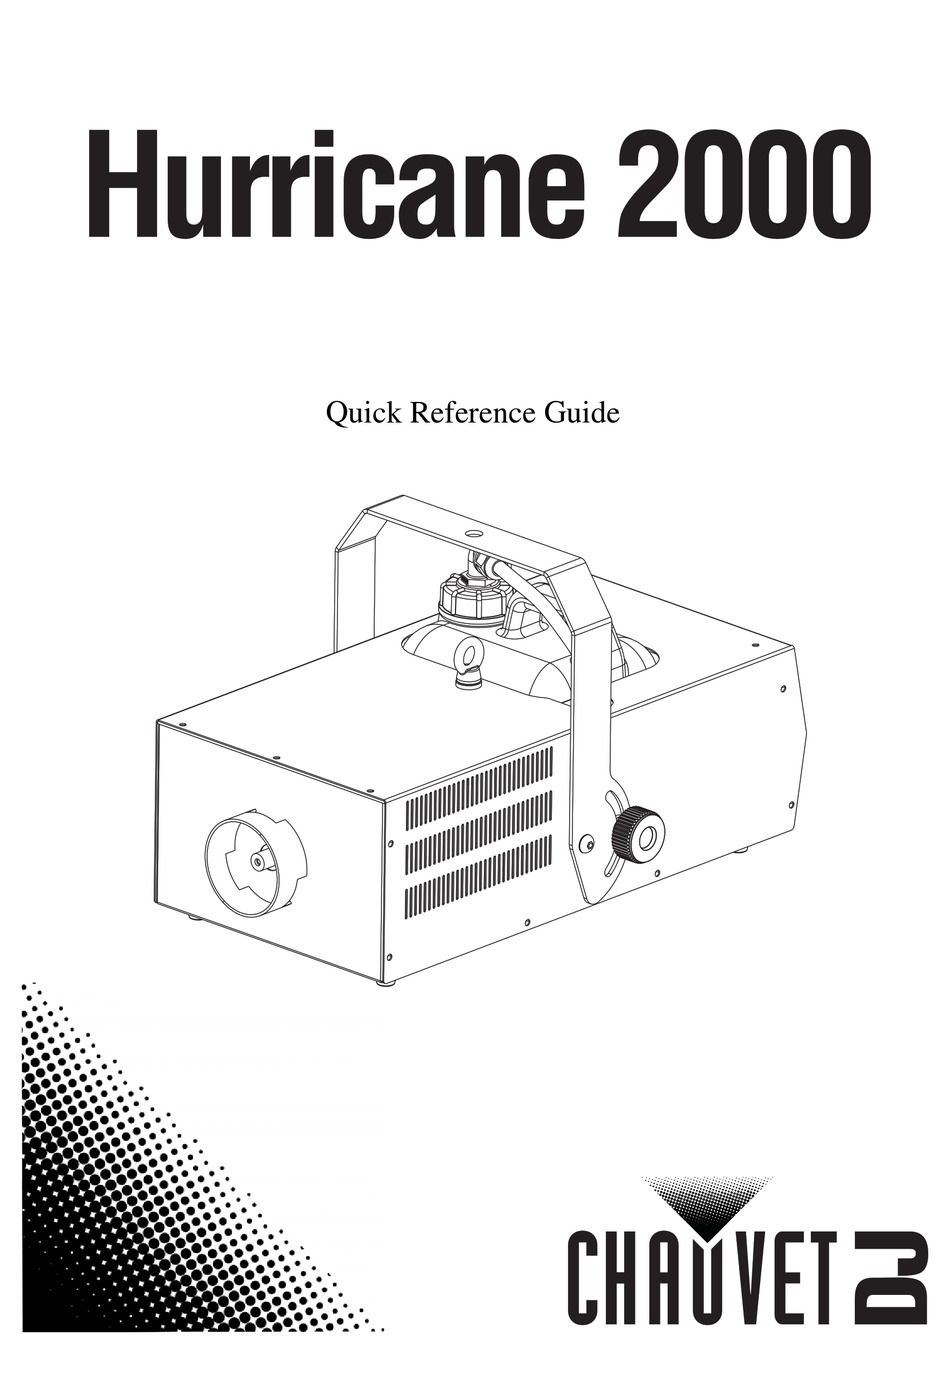 CHAUVET HURRICANE 2000 QUICK REFERENCE MANUAL Pdf Download